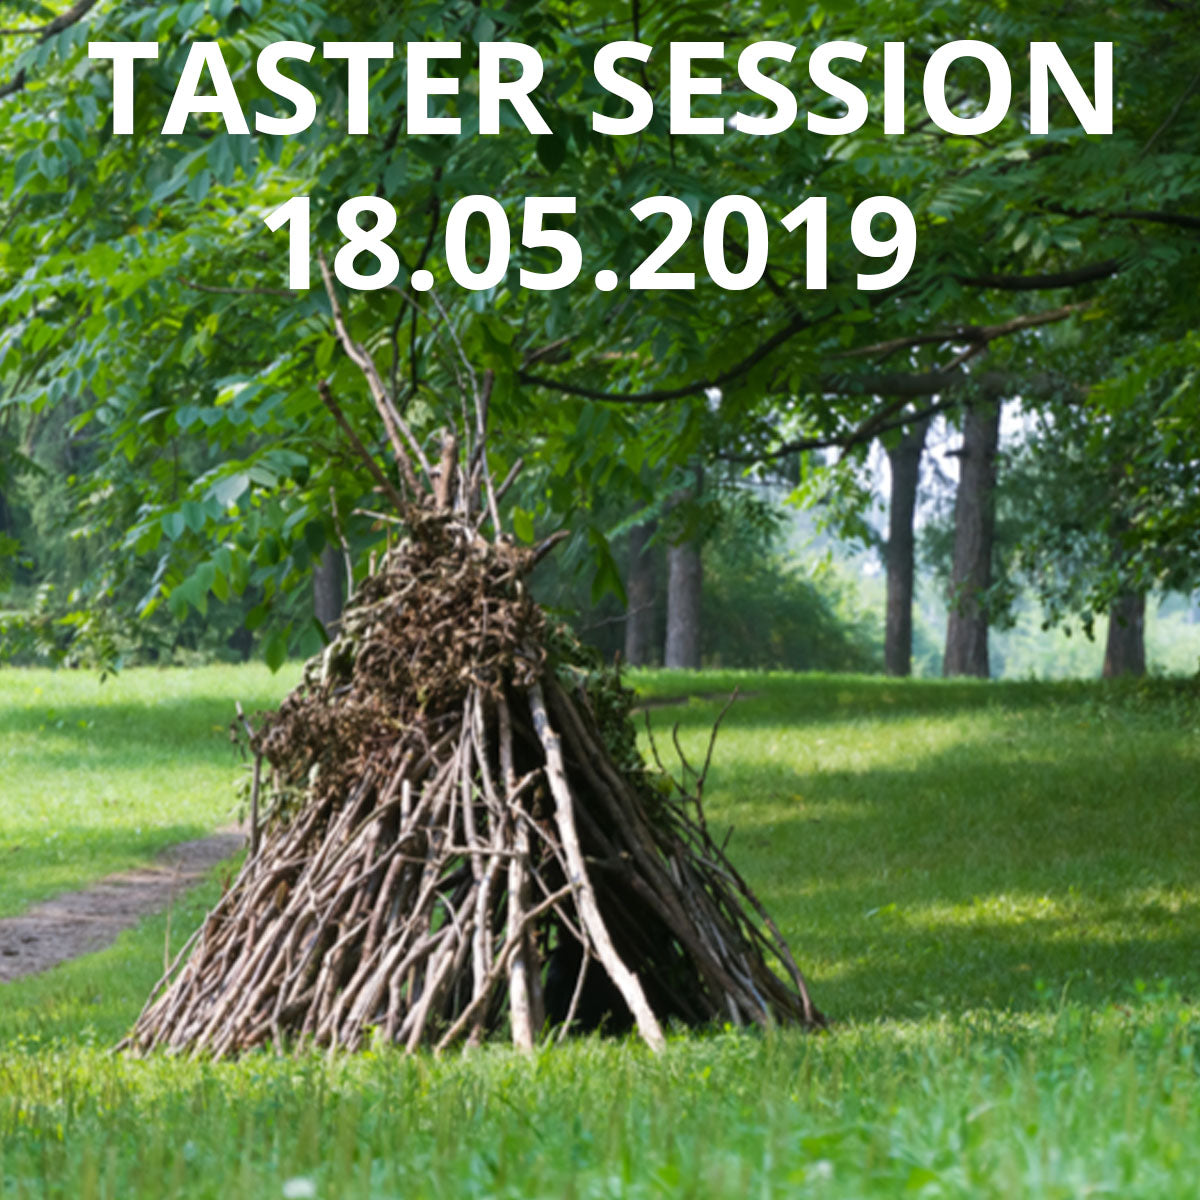 Forest School Taster Session 18-05-2019